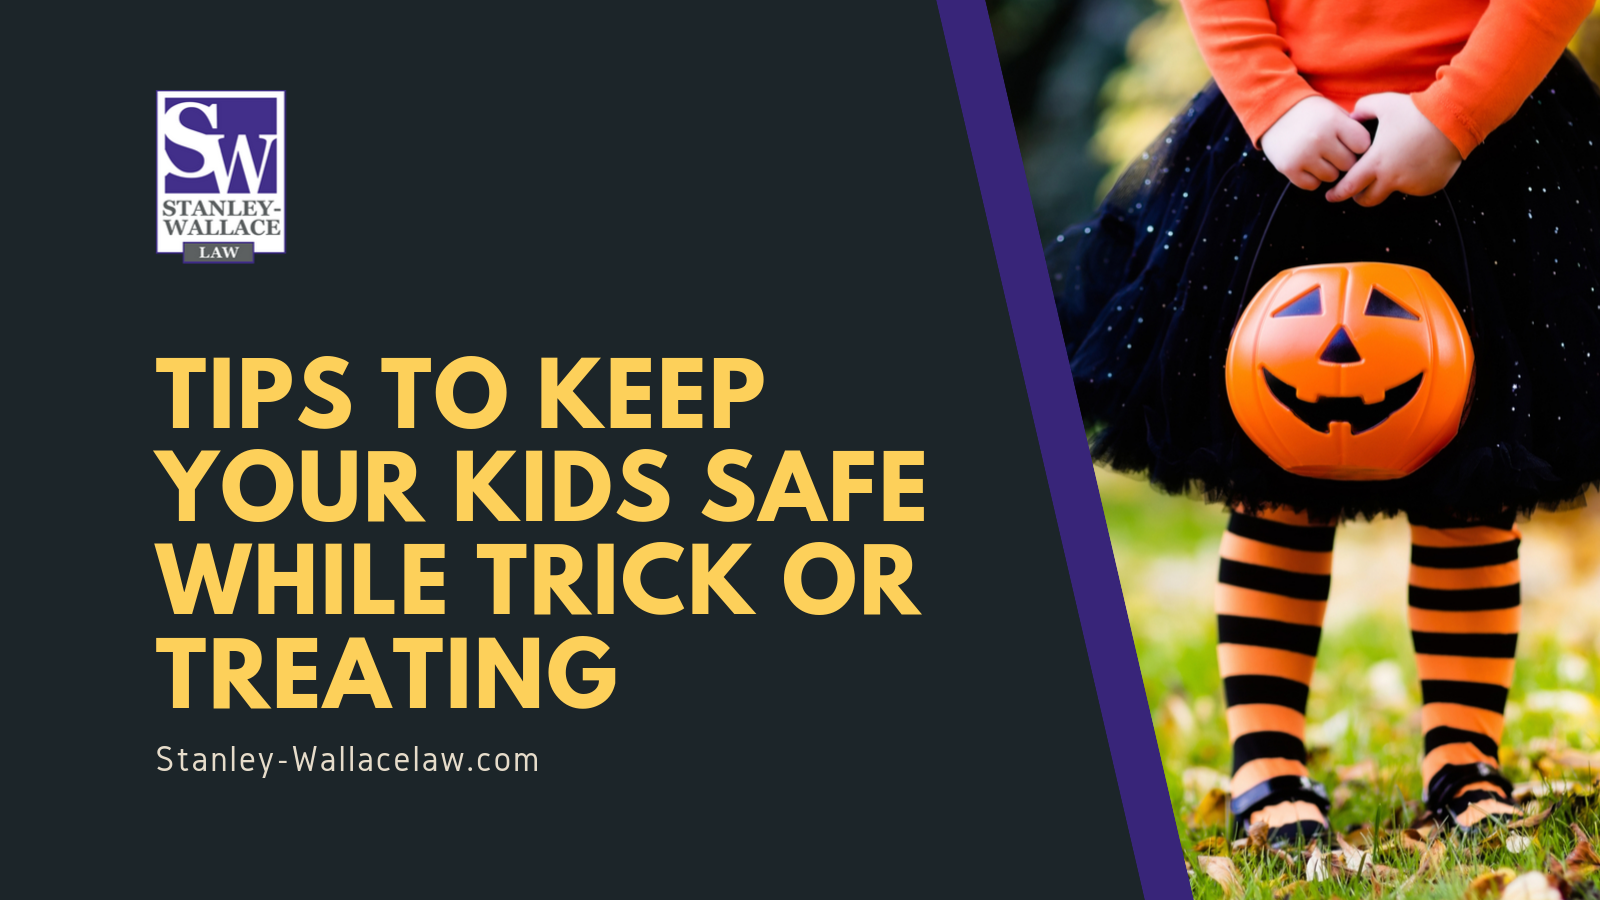 Tips to Keep Your Kids Safe While Trick or Treating - Stanley-Wallace Law - slidell louisiana